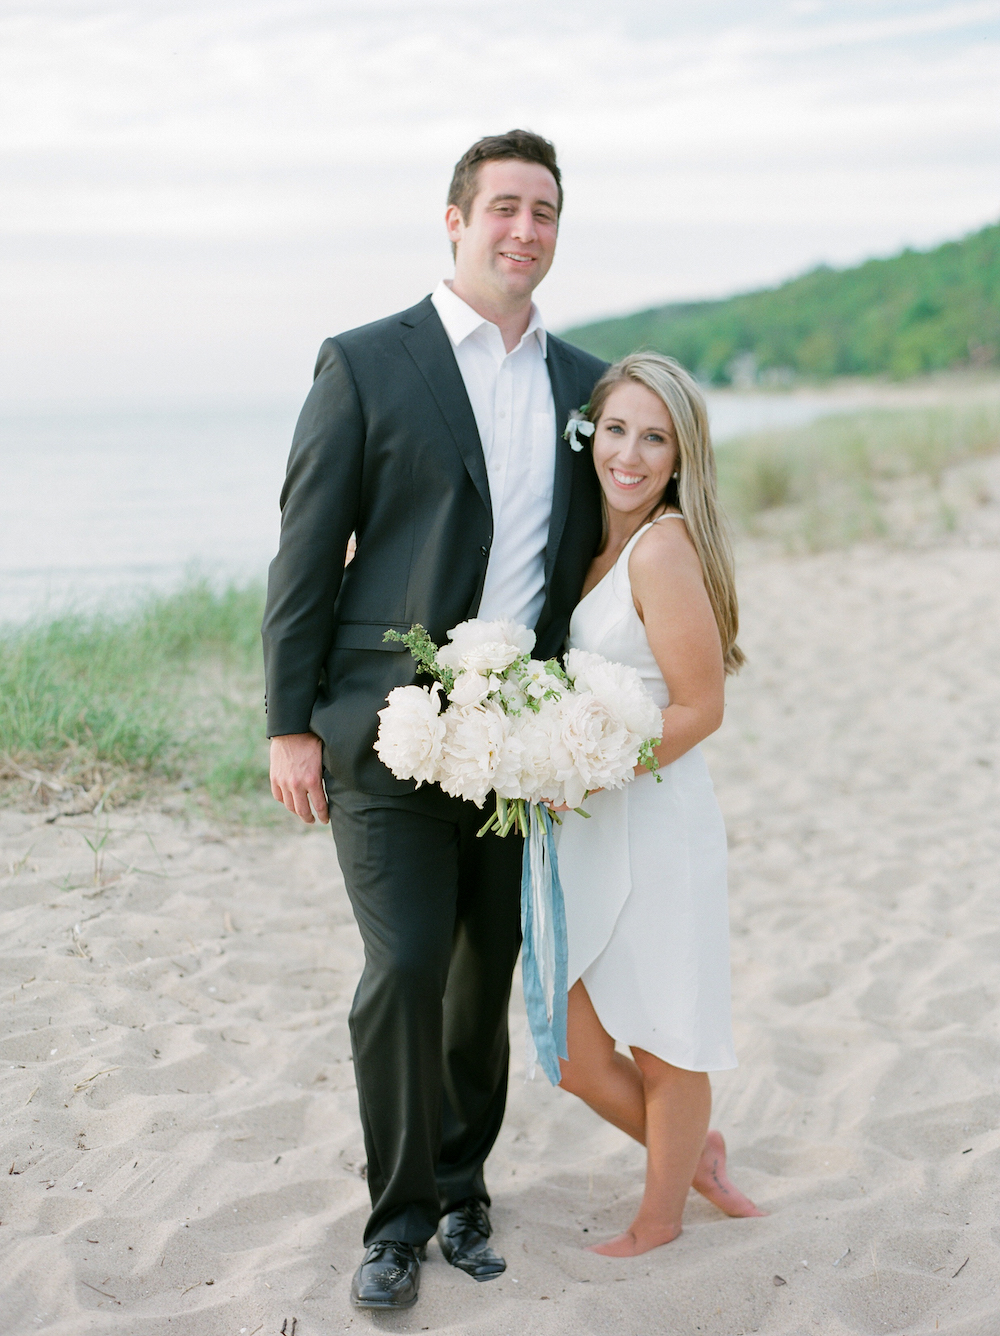 A couple smiling during the lake michigan beach wedding